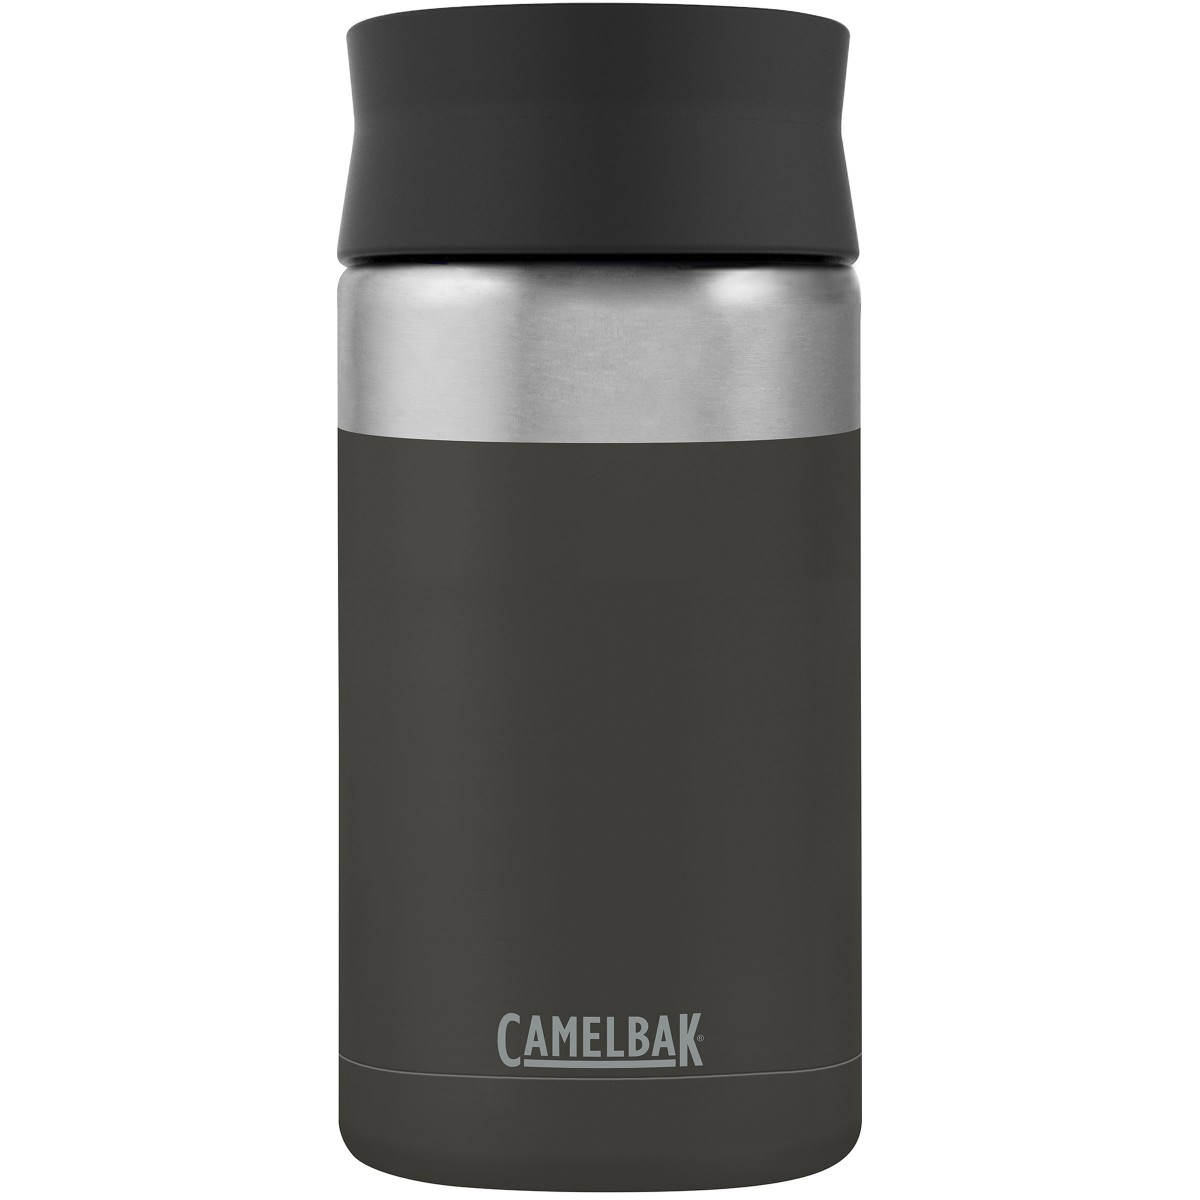 CamelBak Hot Cap 350 ml Insulated Stainless Steel Krus - Jet